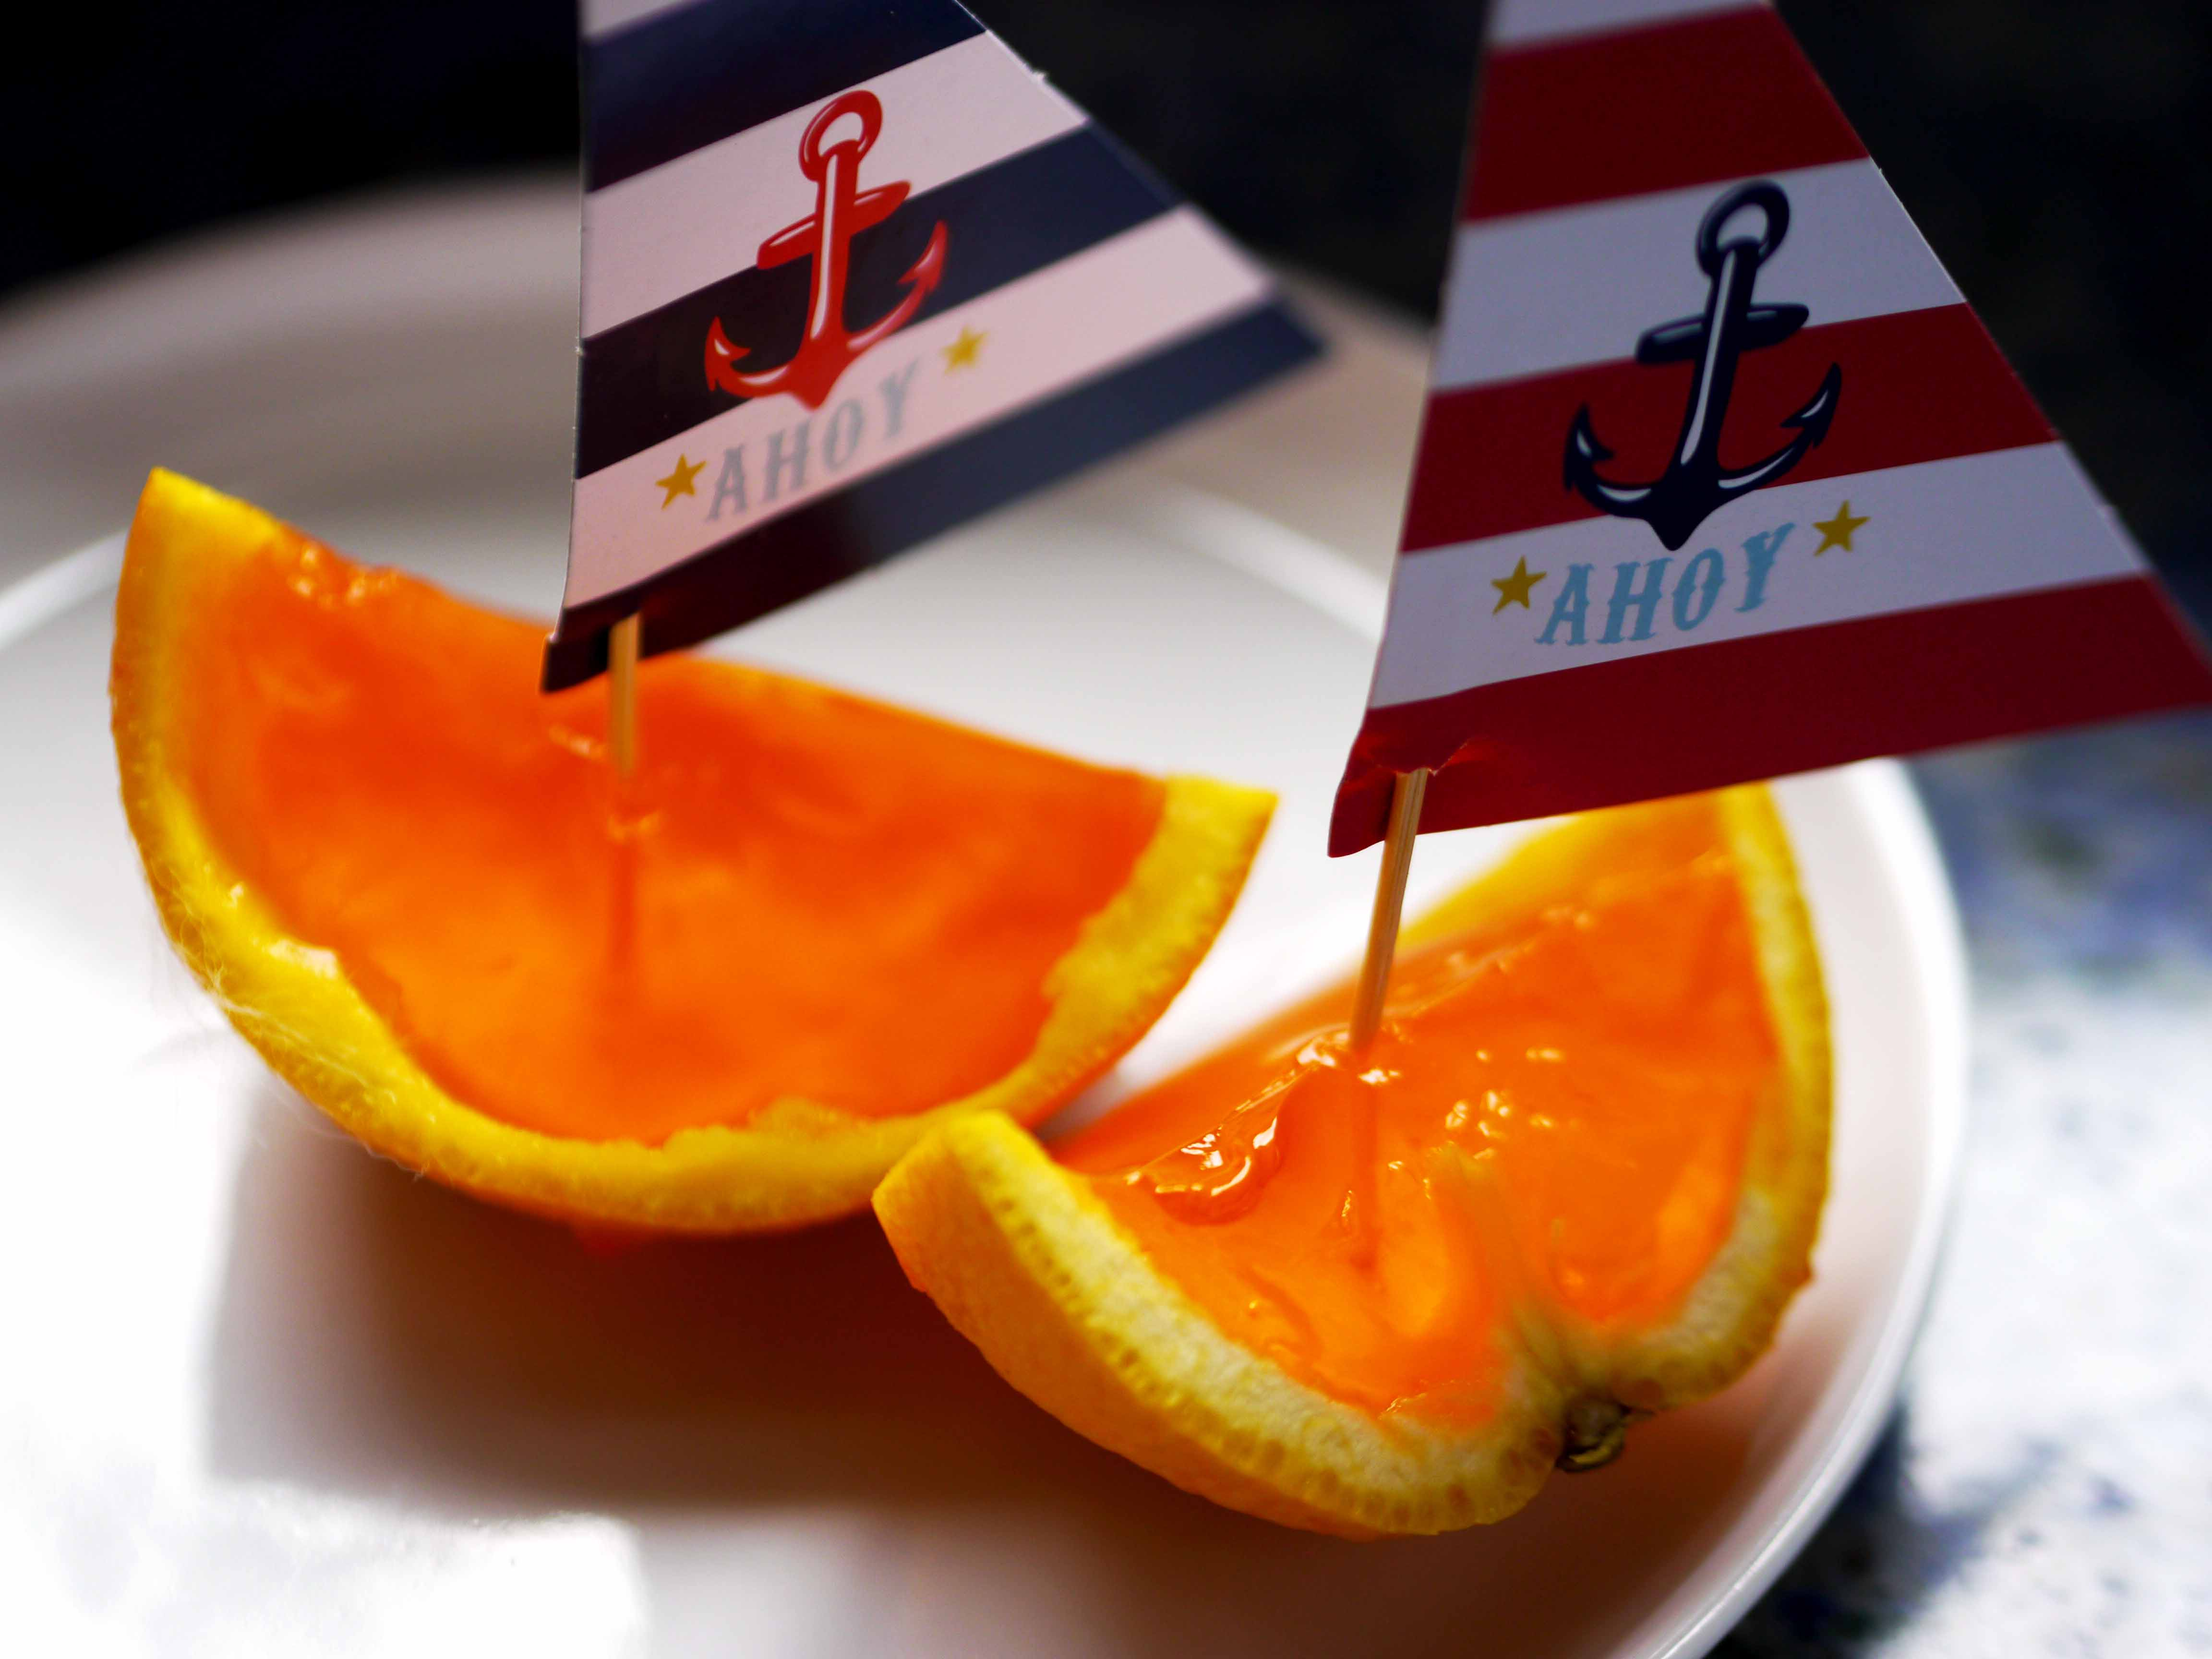 Sailboats made out of oranges